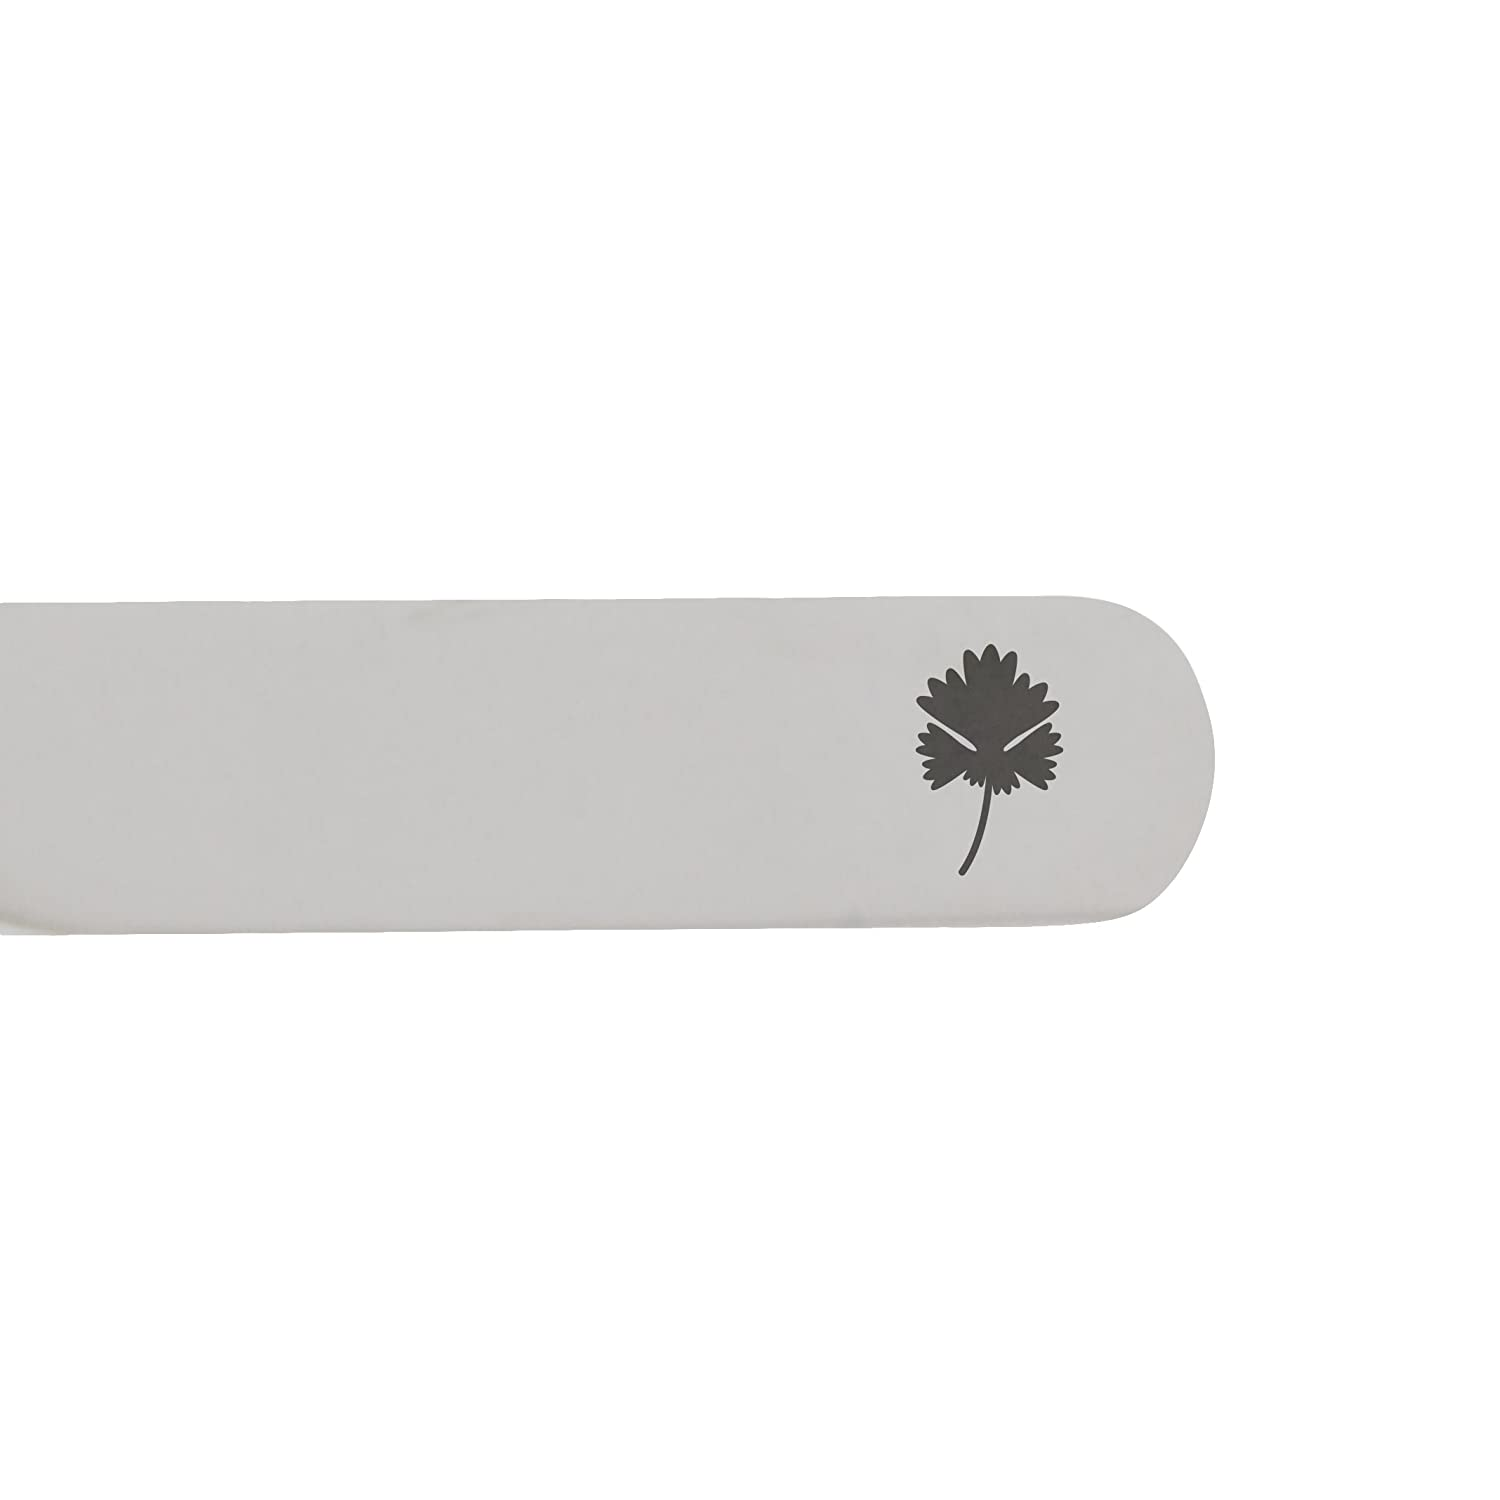 Made In USA 2.5 Inch Metal Collar Stiffeners MODERN GOODS SHOP Stainless Steel Collar Stays With Laser Engraved Cilantro Design